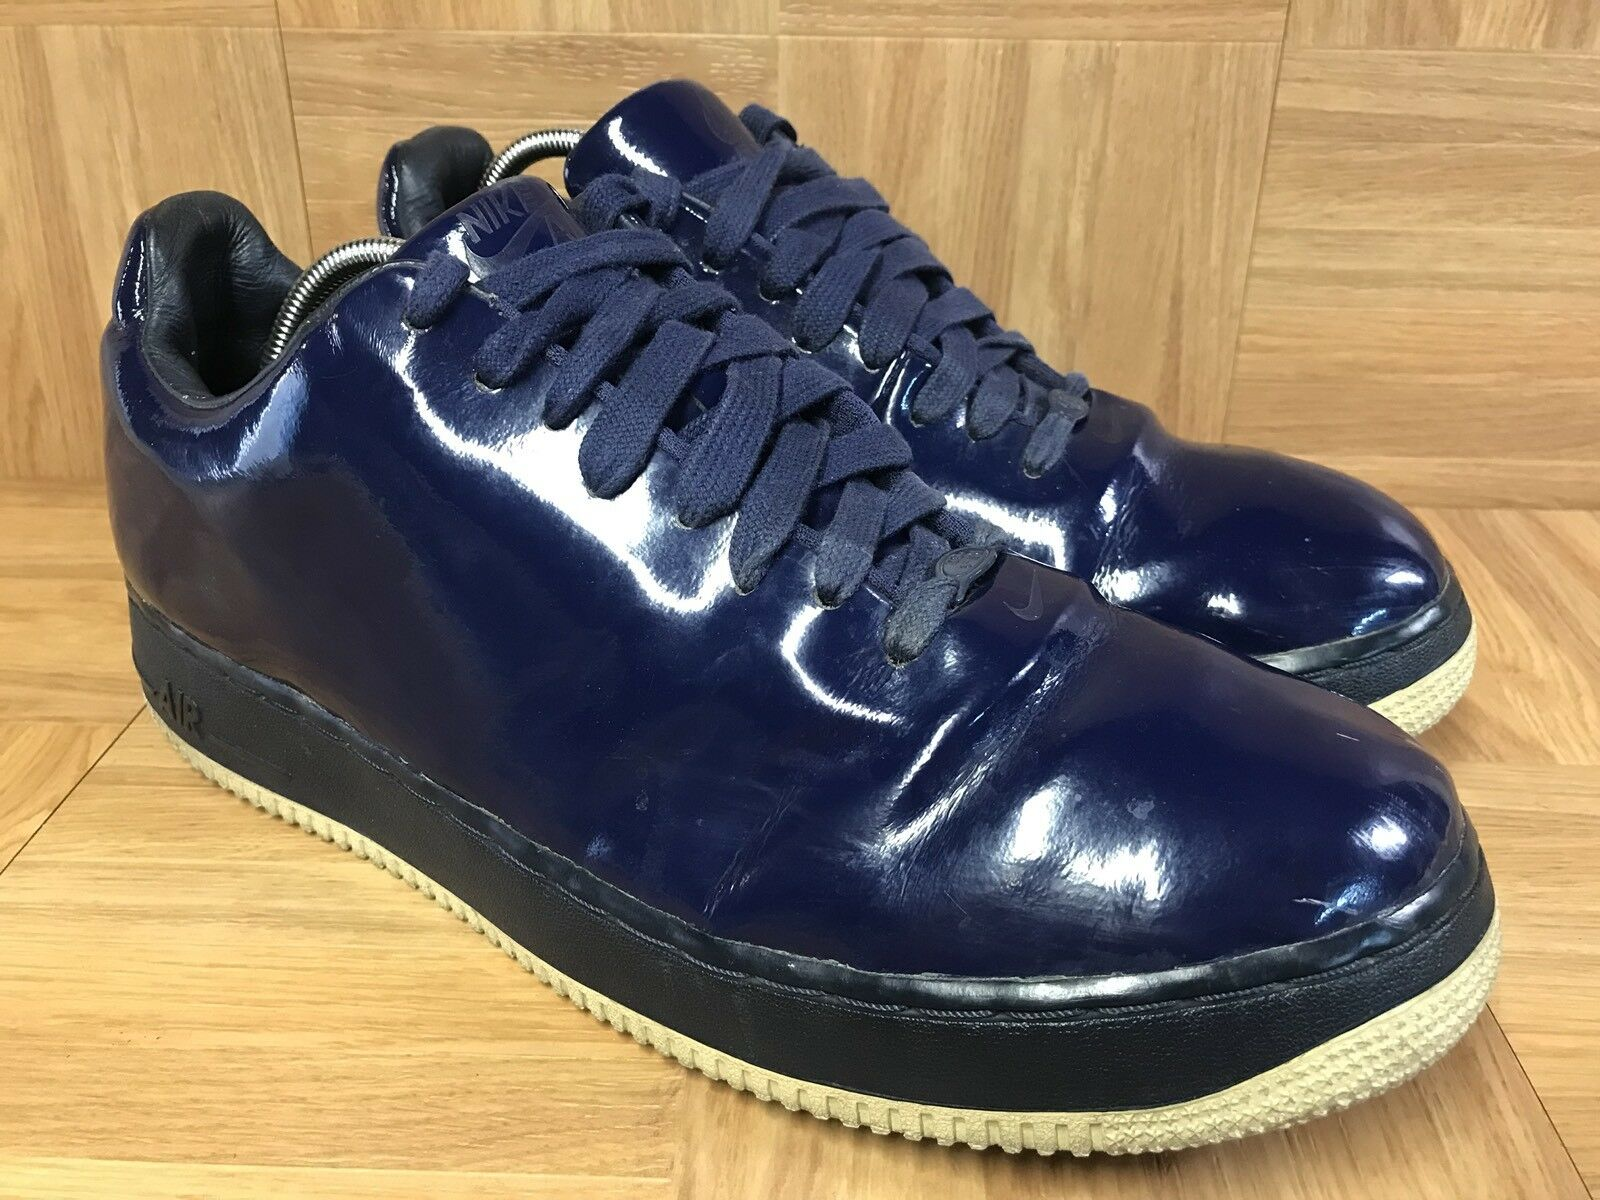 Worn Nike Air Force 1 Obsidian bluee Patent Leather Shiny S 12 313644-411 BBALL